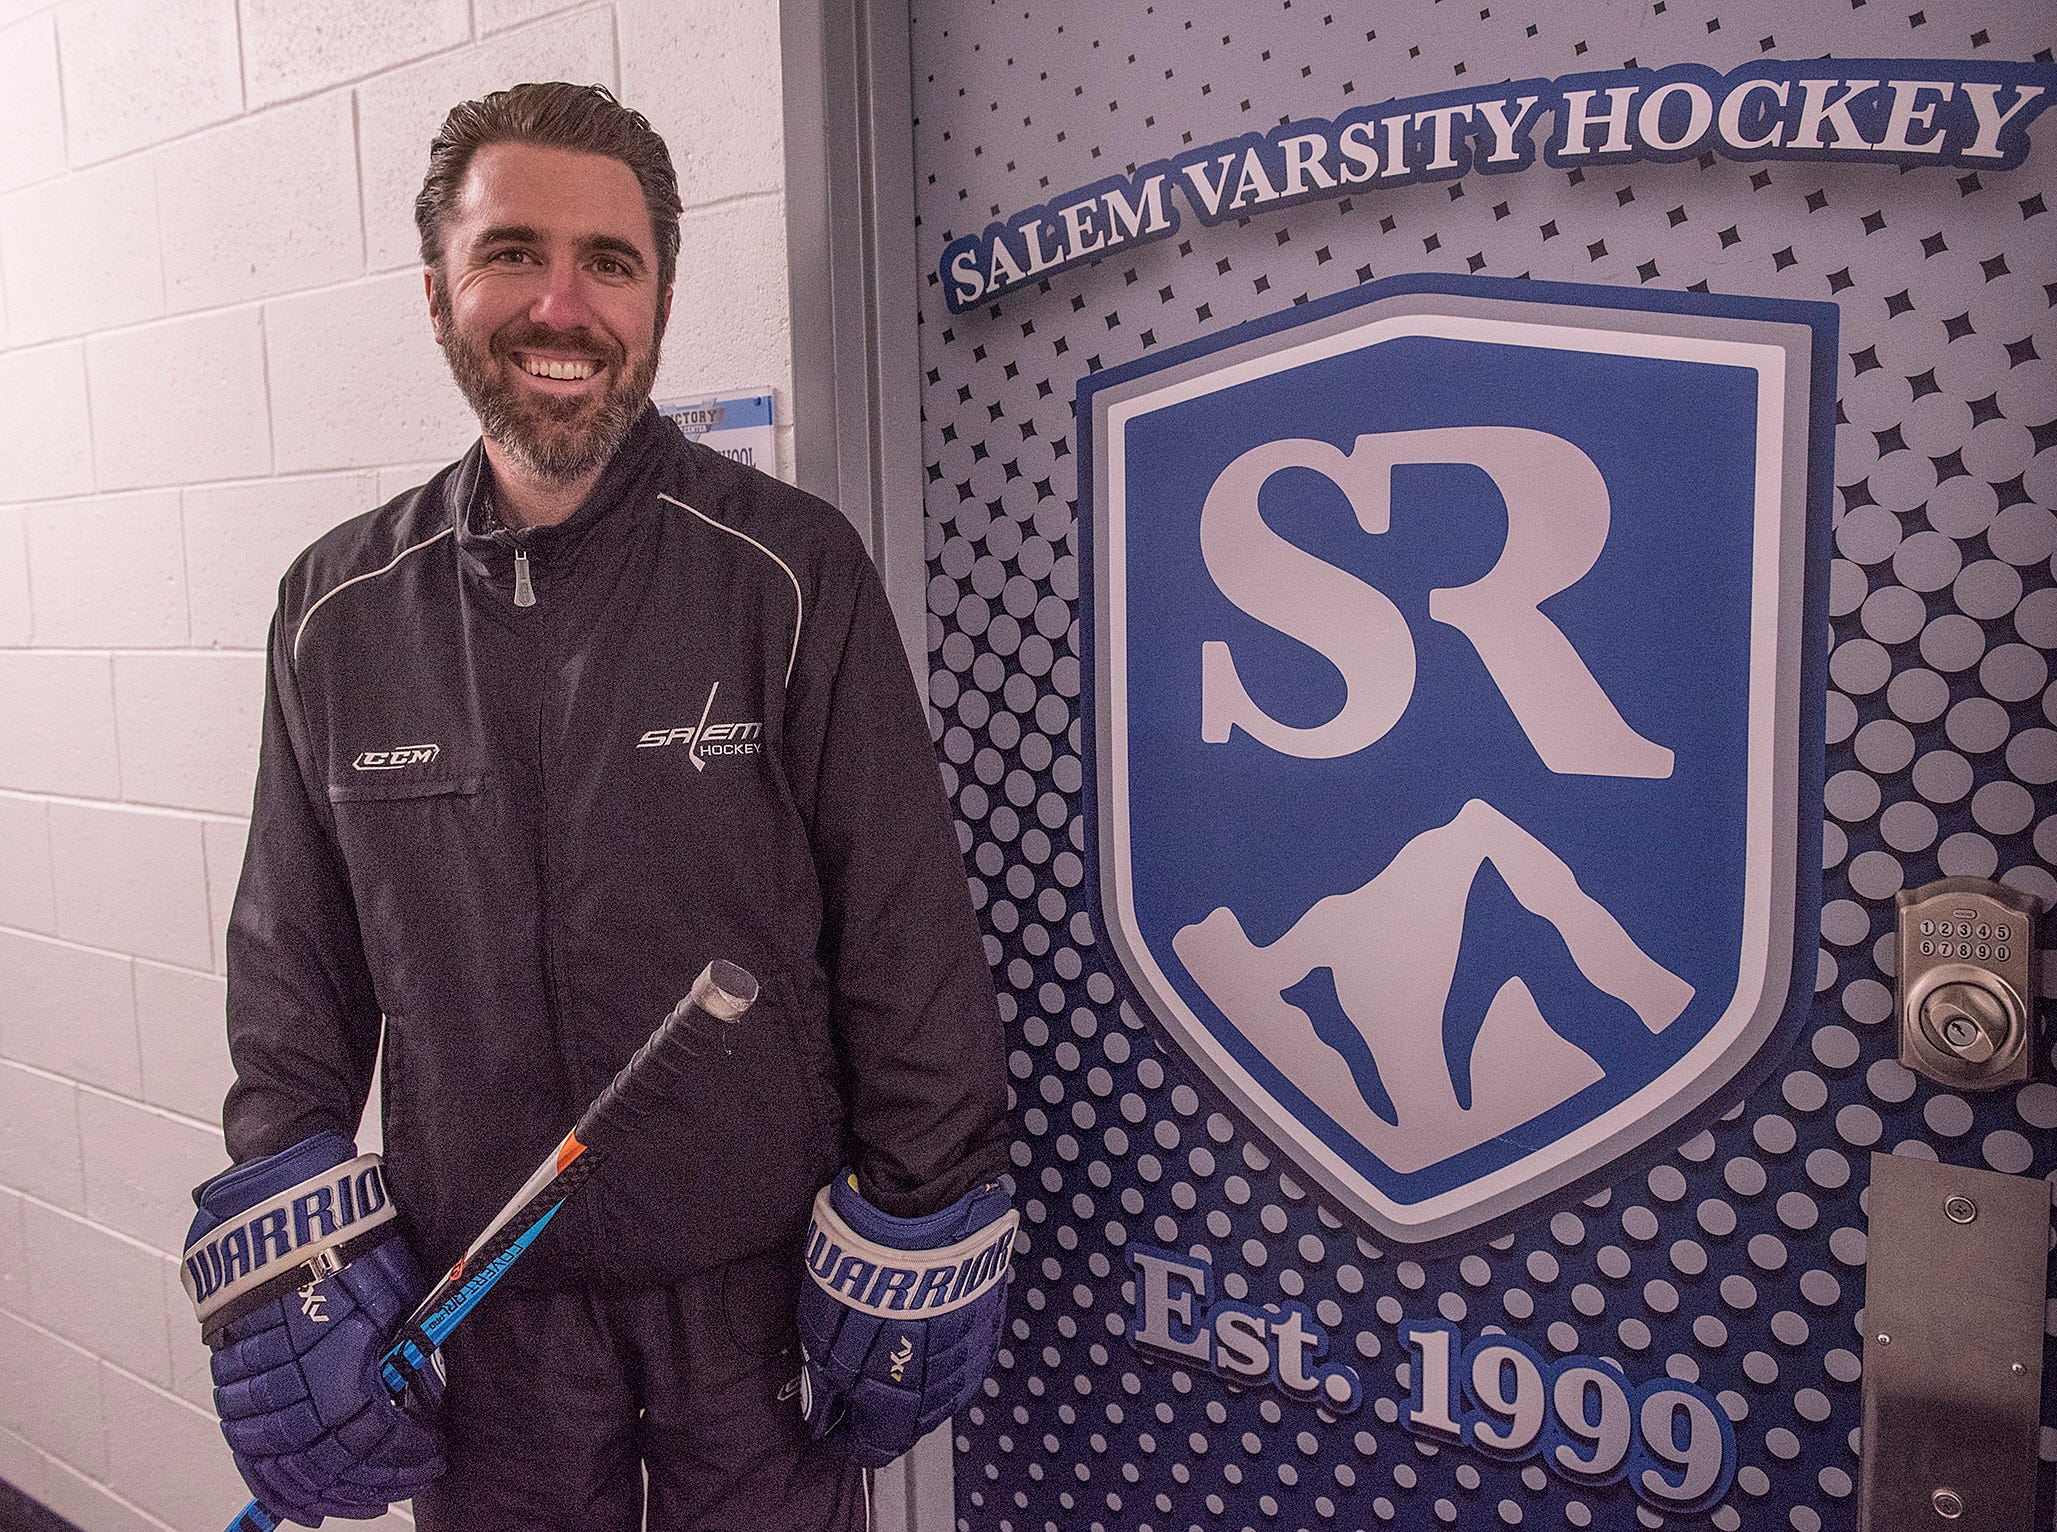 Coach Ryan Ossenmacher is happy to have a permanent home for Salem Hockey.